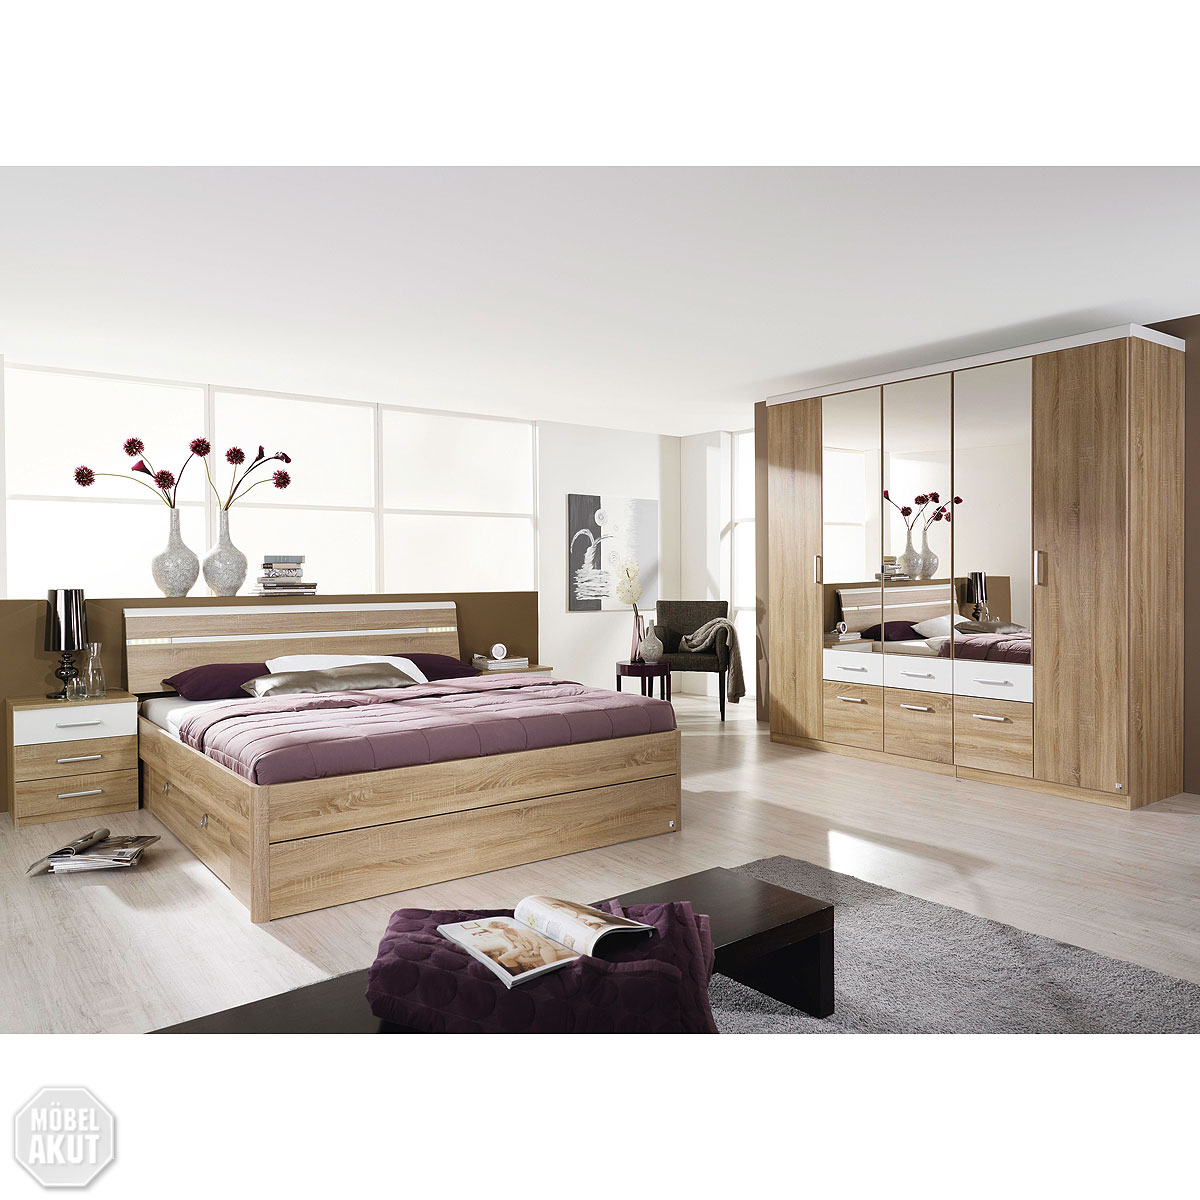 schlafzimmer set rasa bett schrank nako sonoma eiche s gerau wei spiegel neu ebay. Black Bedroom Furniture Sets. Home Design Ideas